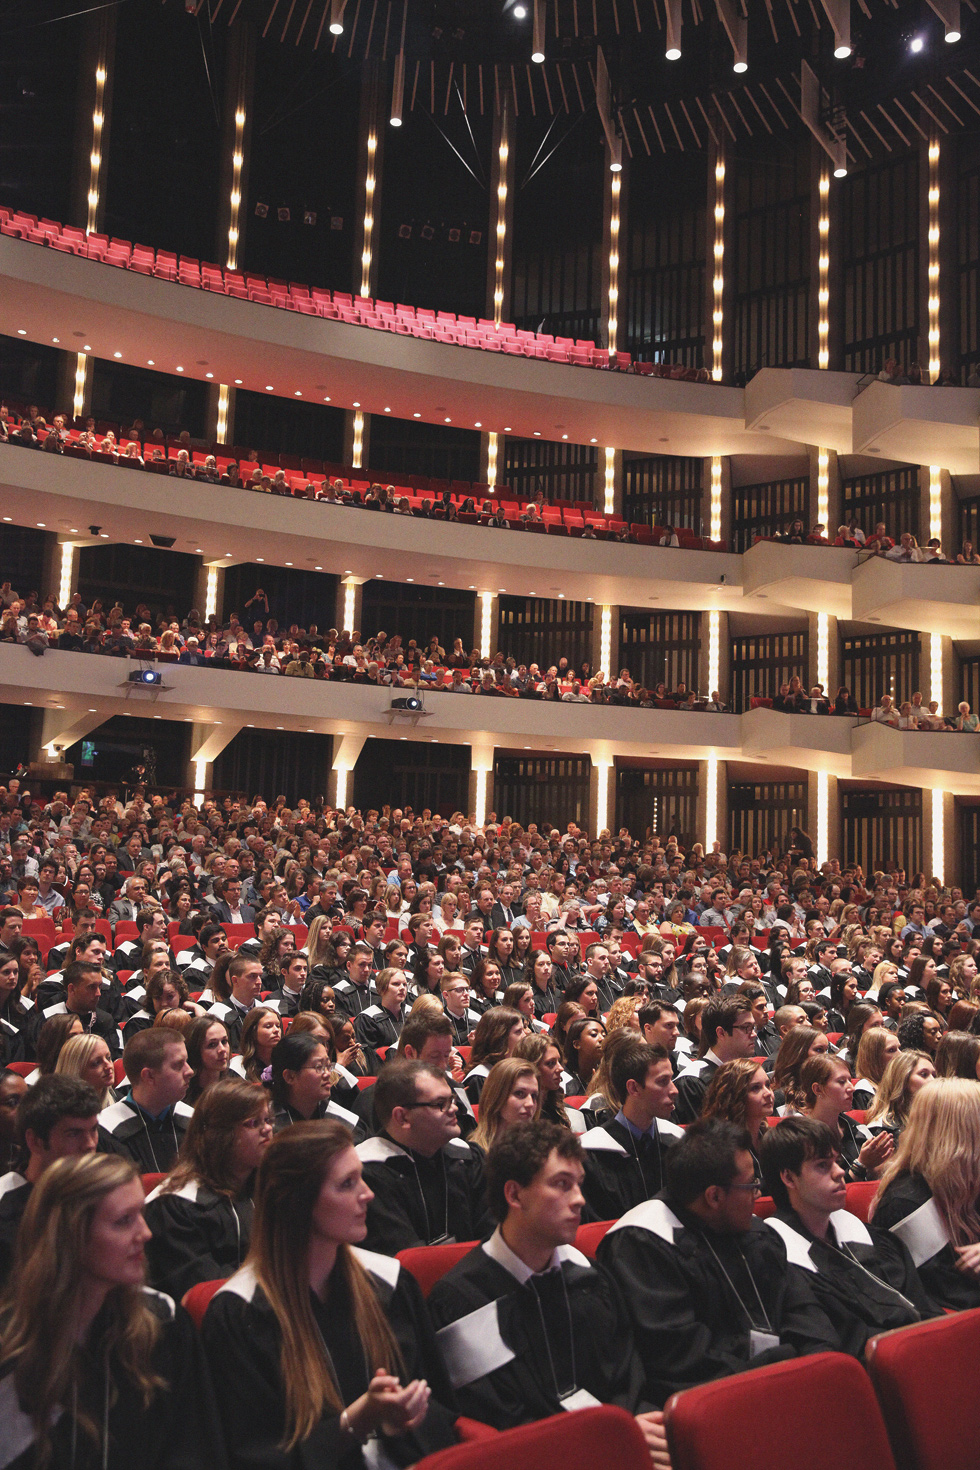 Theater full of students dressed in graduation gowns in 2013.